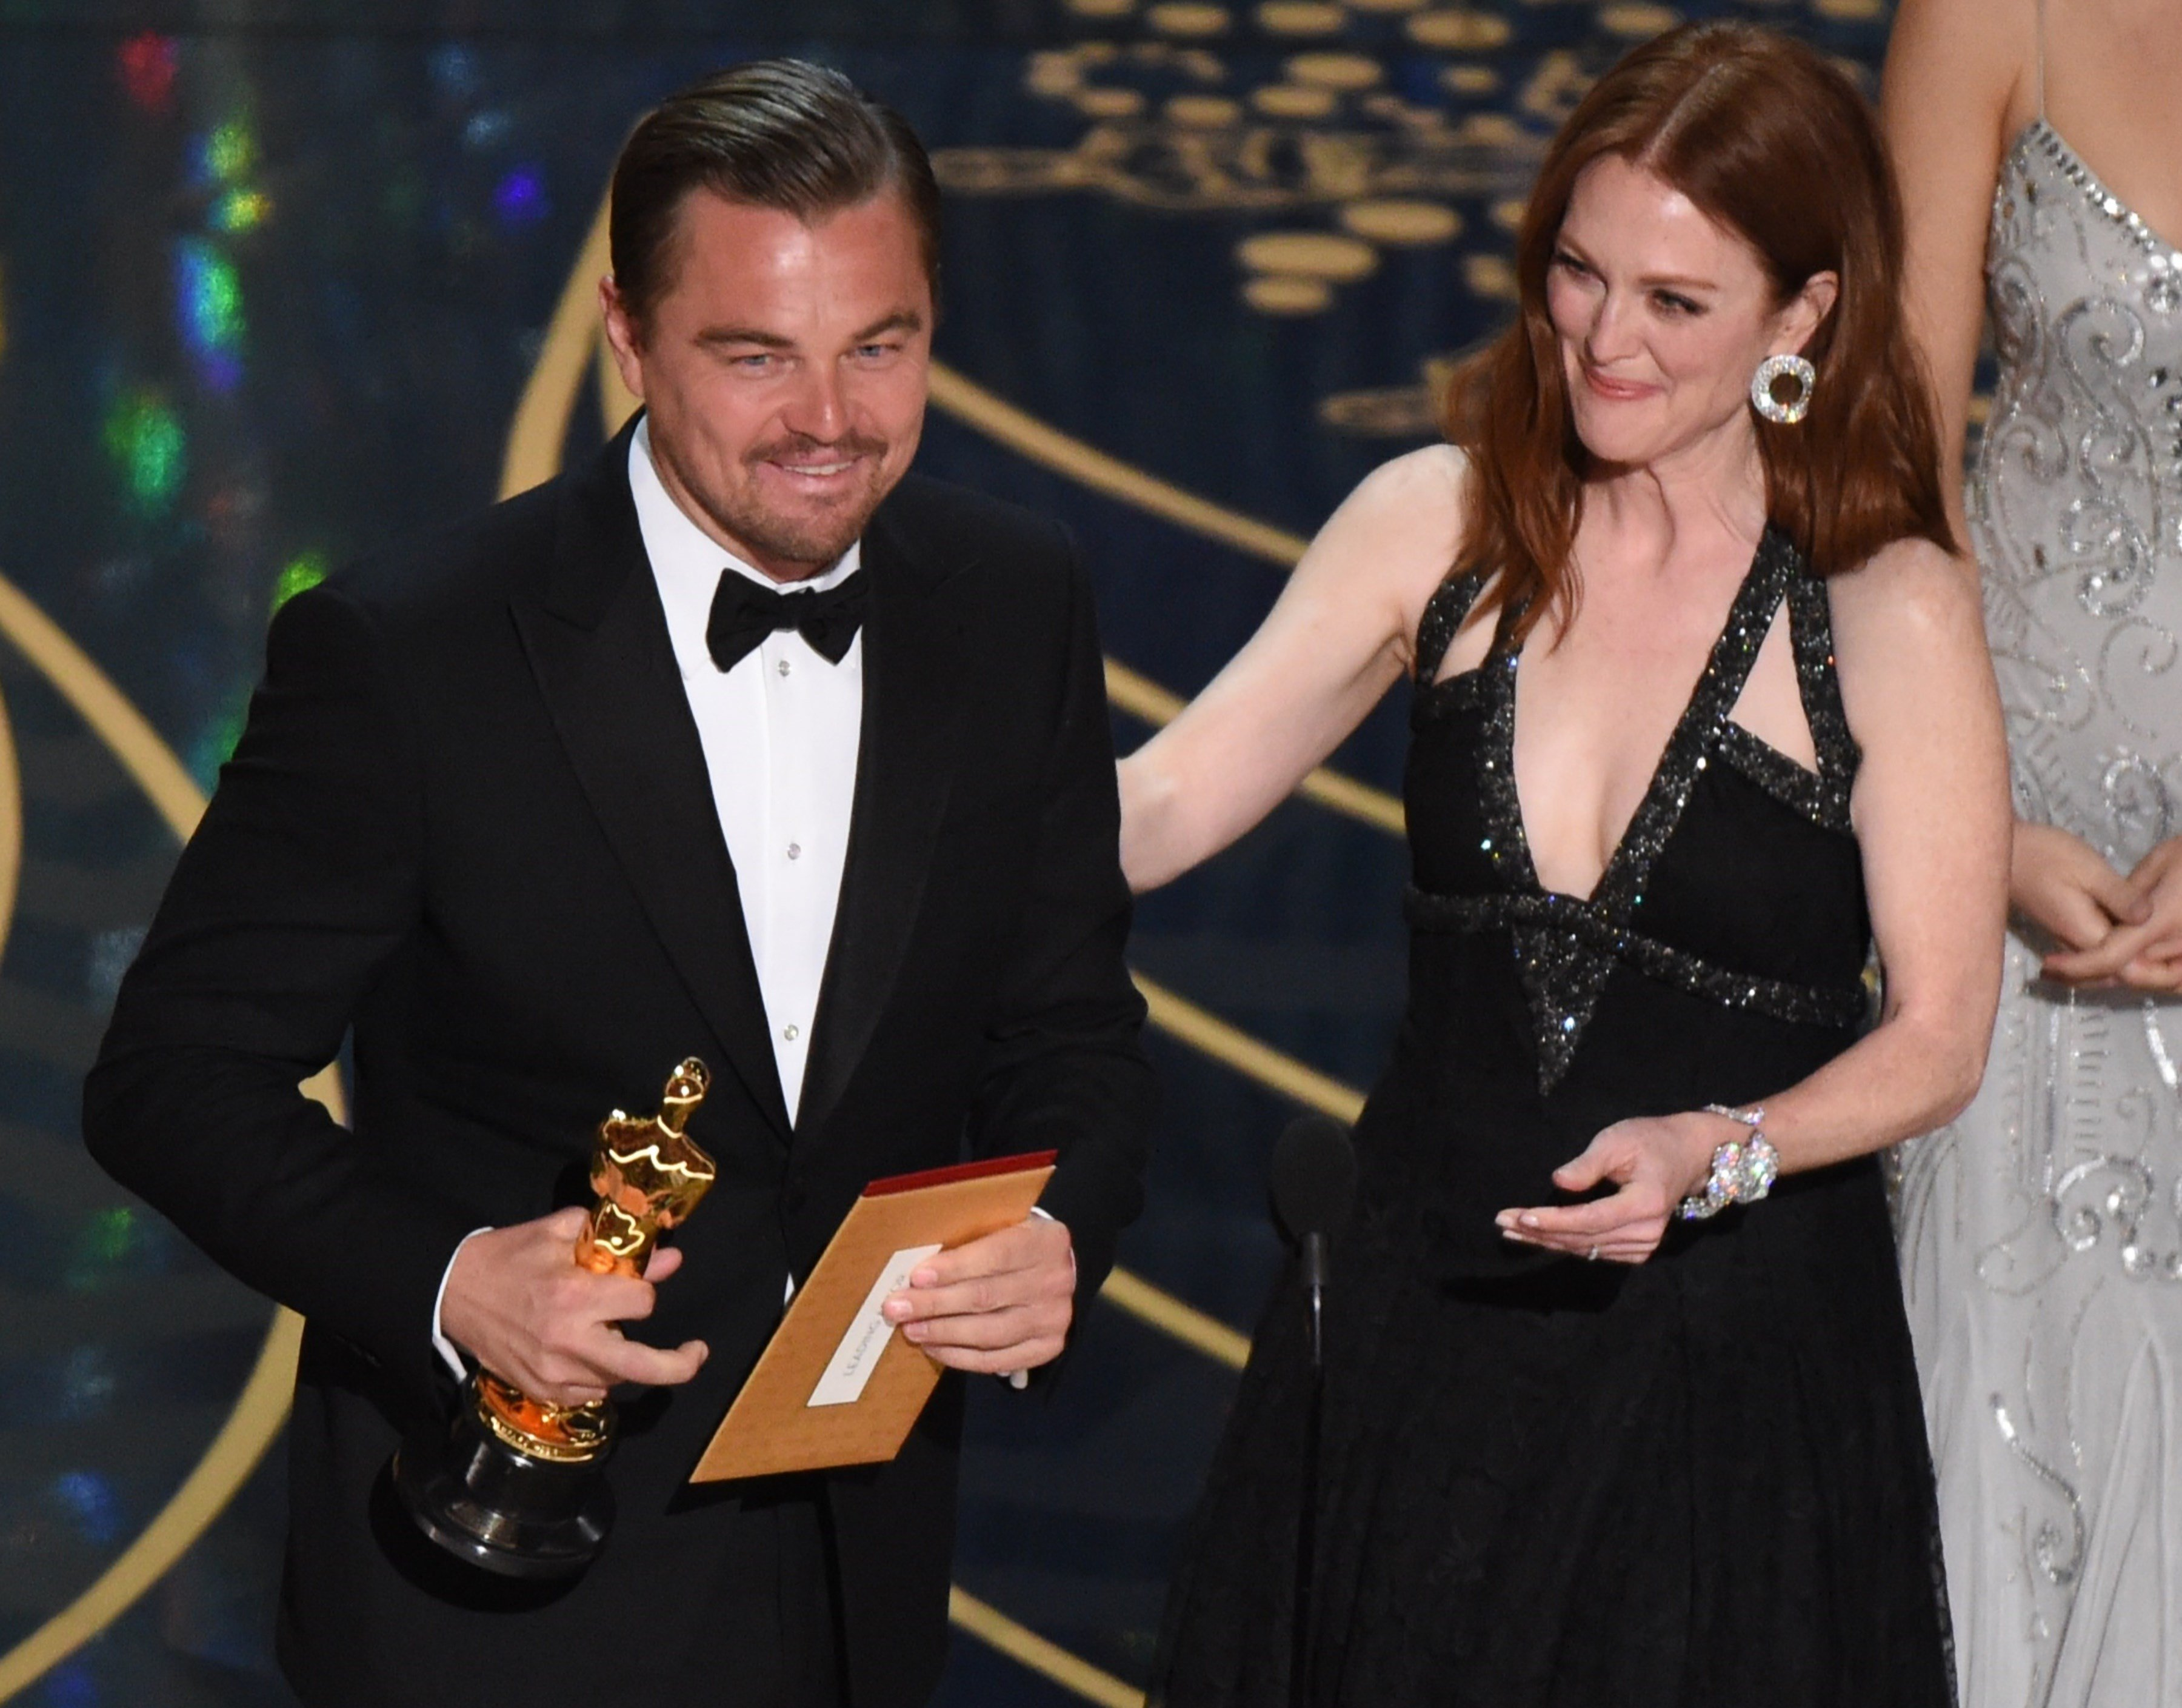 Actor Leonardo DiCaprio accepts the award for Best Actor in,The Revenant from actress Julianne Moore on stage at the 88th Oscars on February 28, 2016 in Hollywood, California. AFP PHOTO / MARK RALSTON